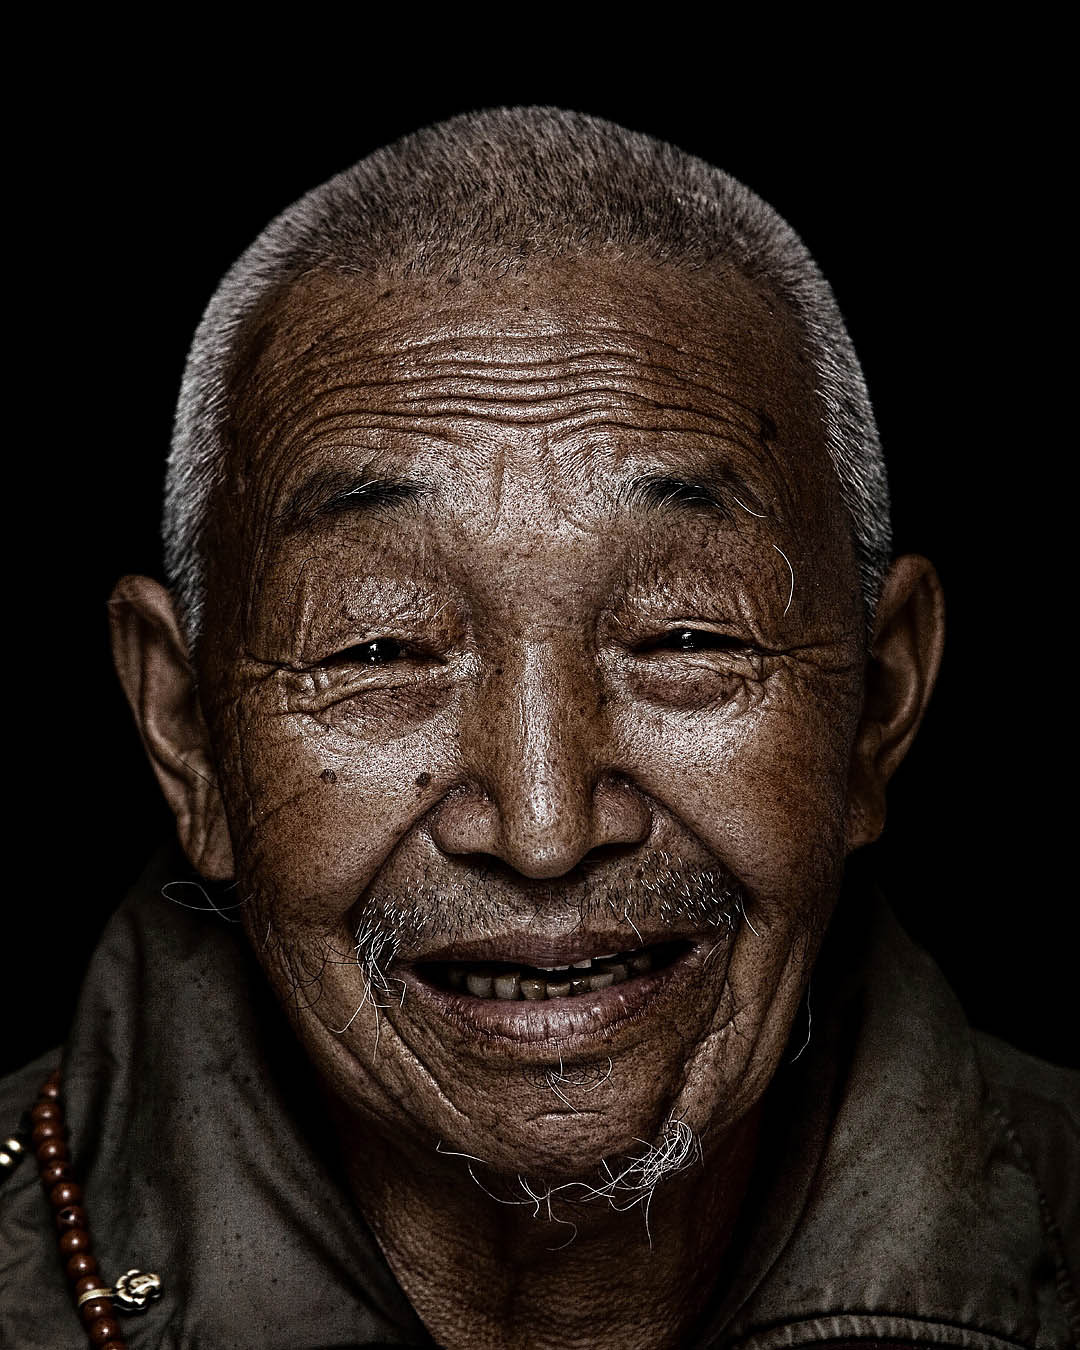 oldtibetcolour8_10s-Recovered_0014_Layer 3.jpg